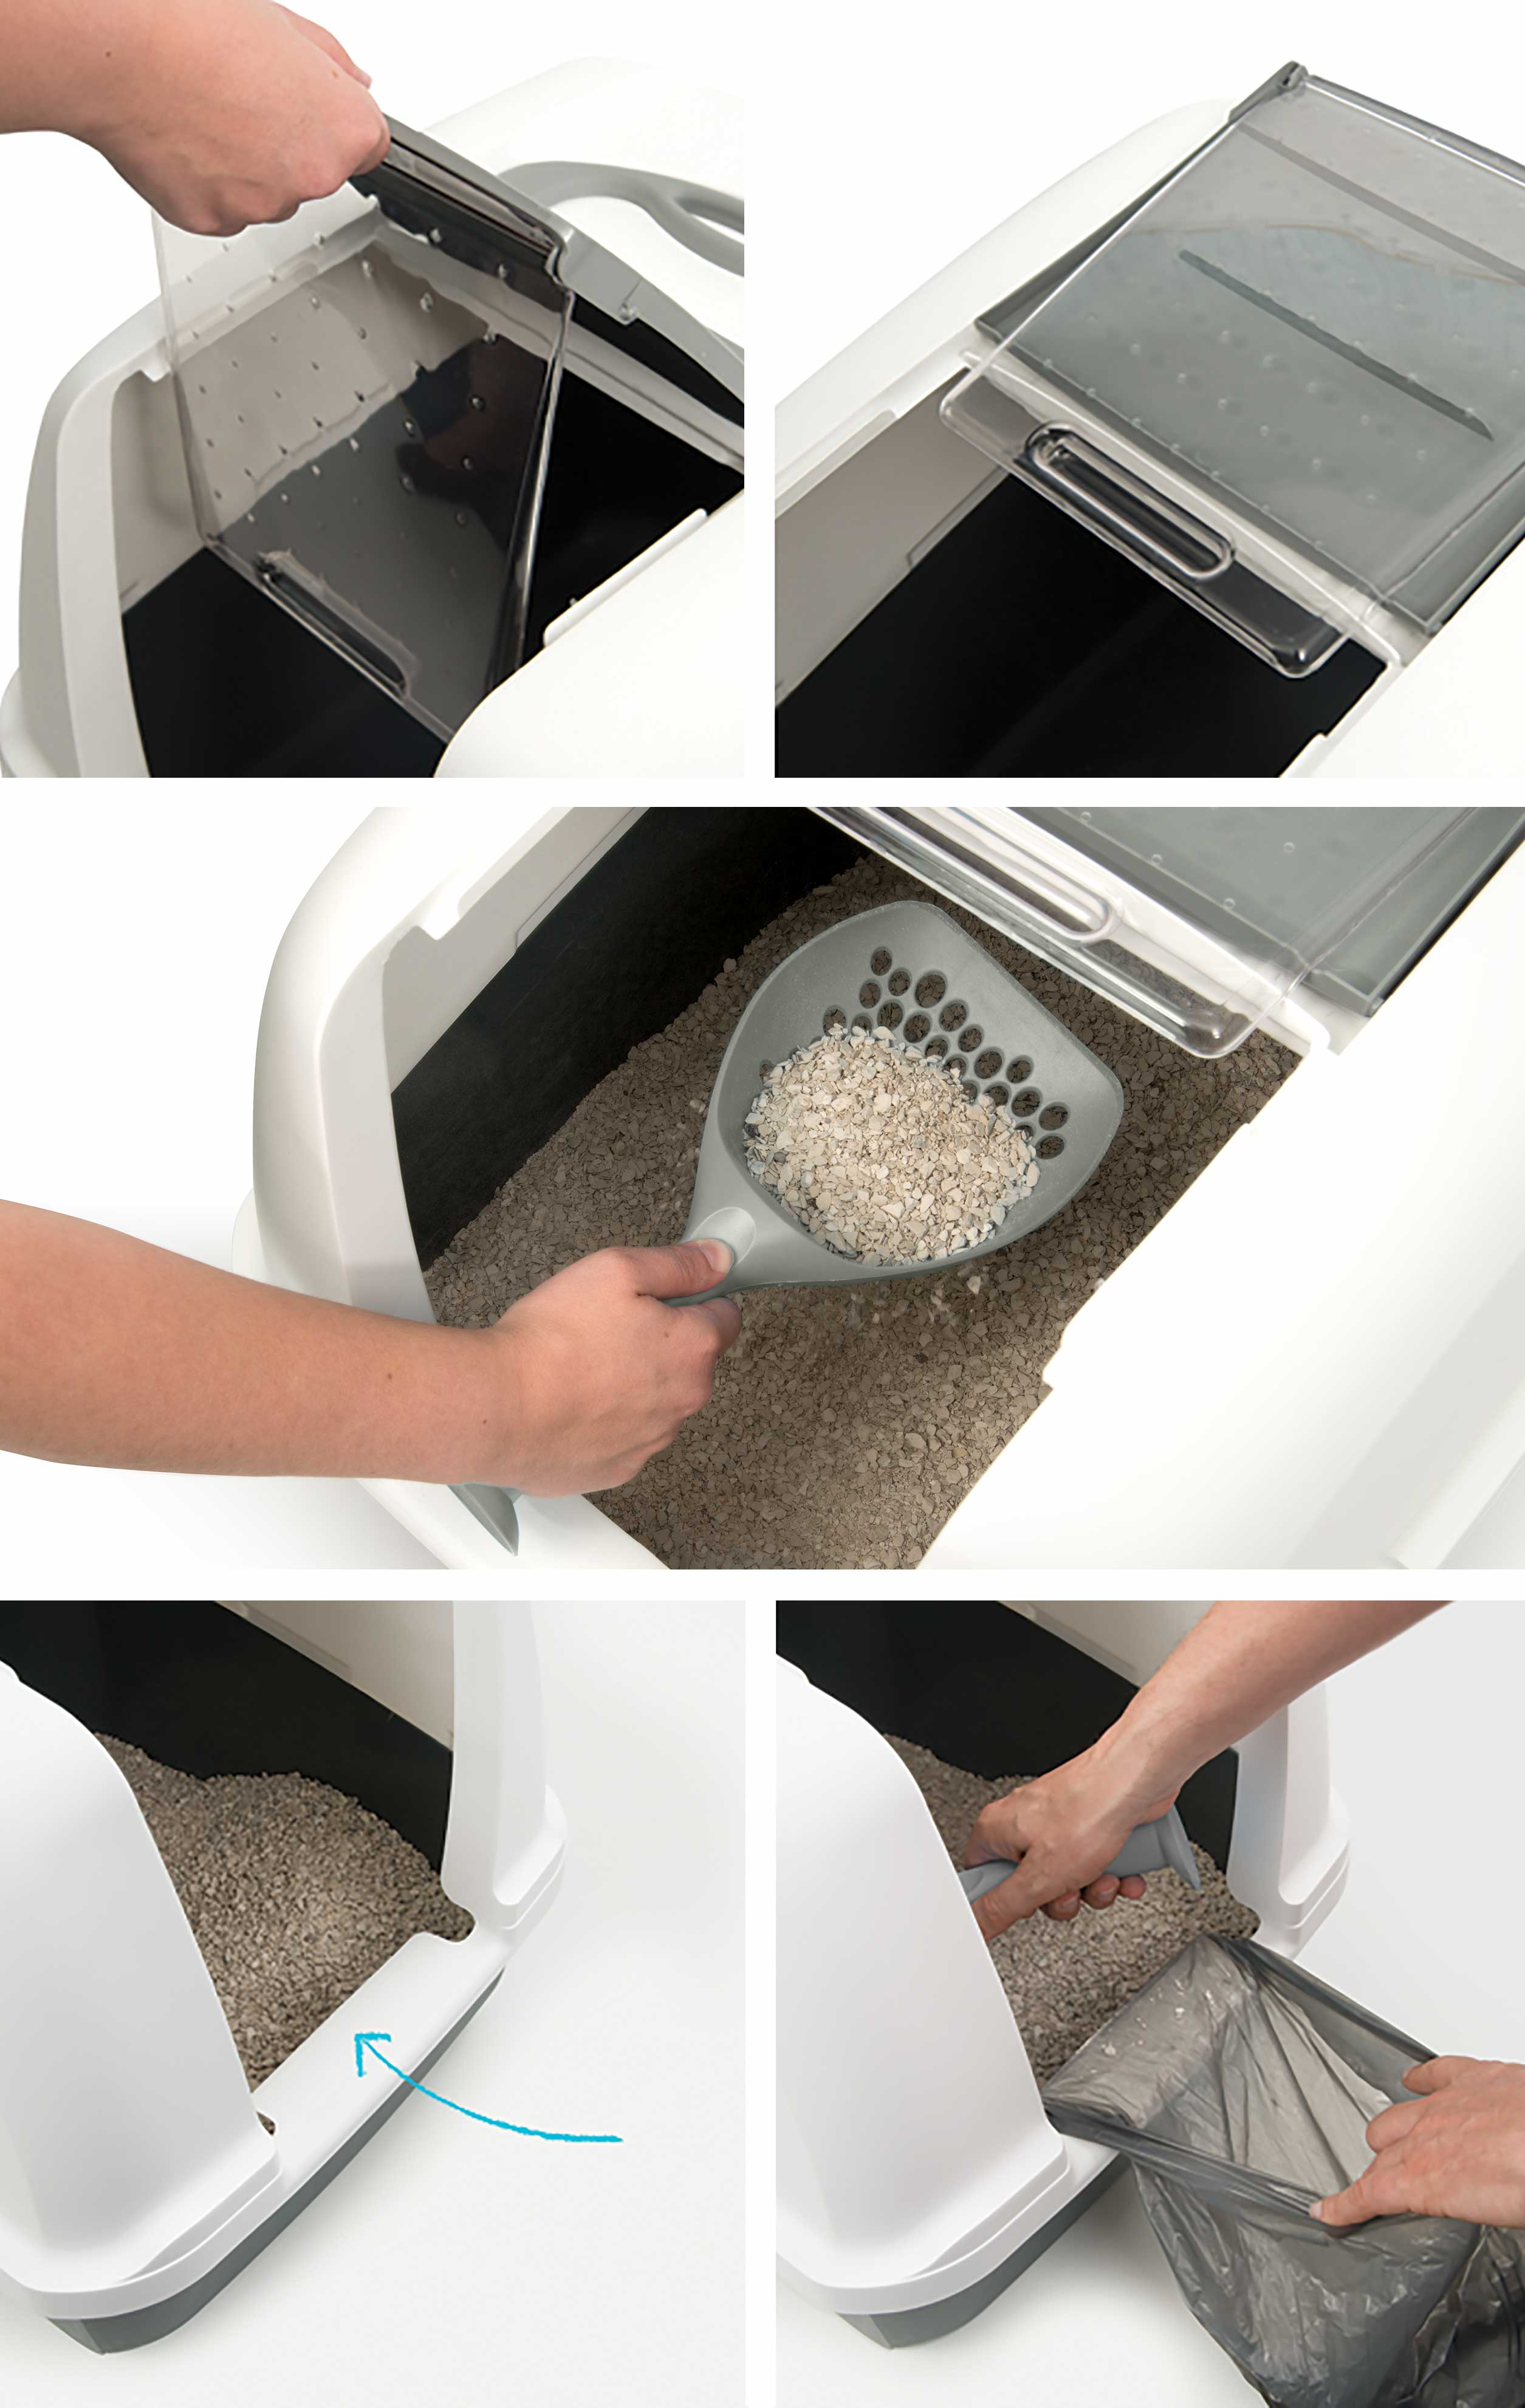 Littler box can easily be opened to remove the litter